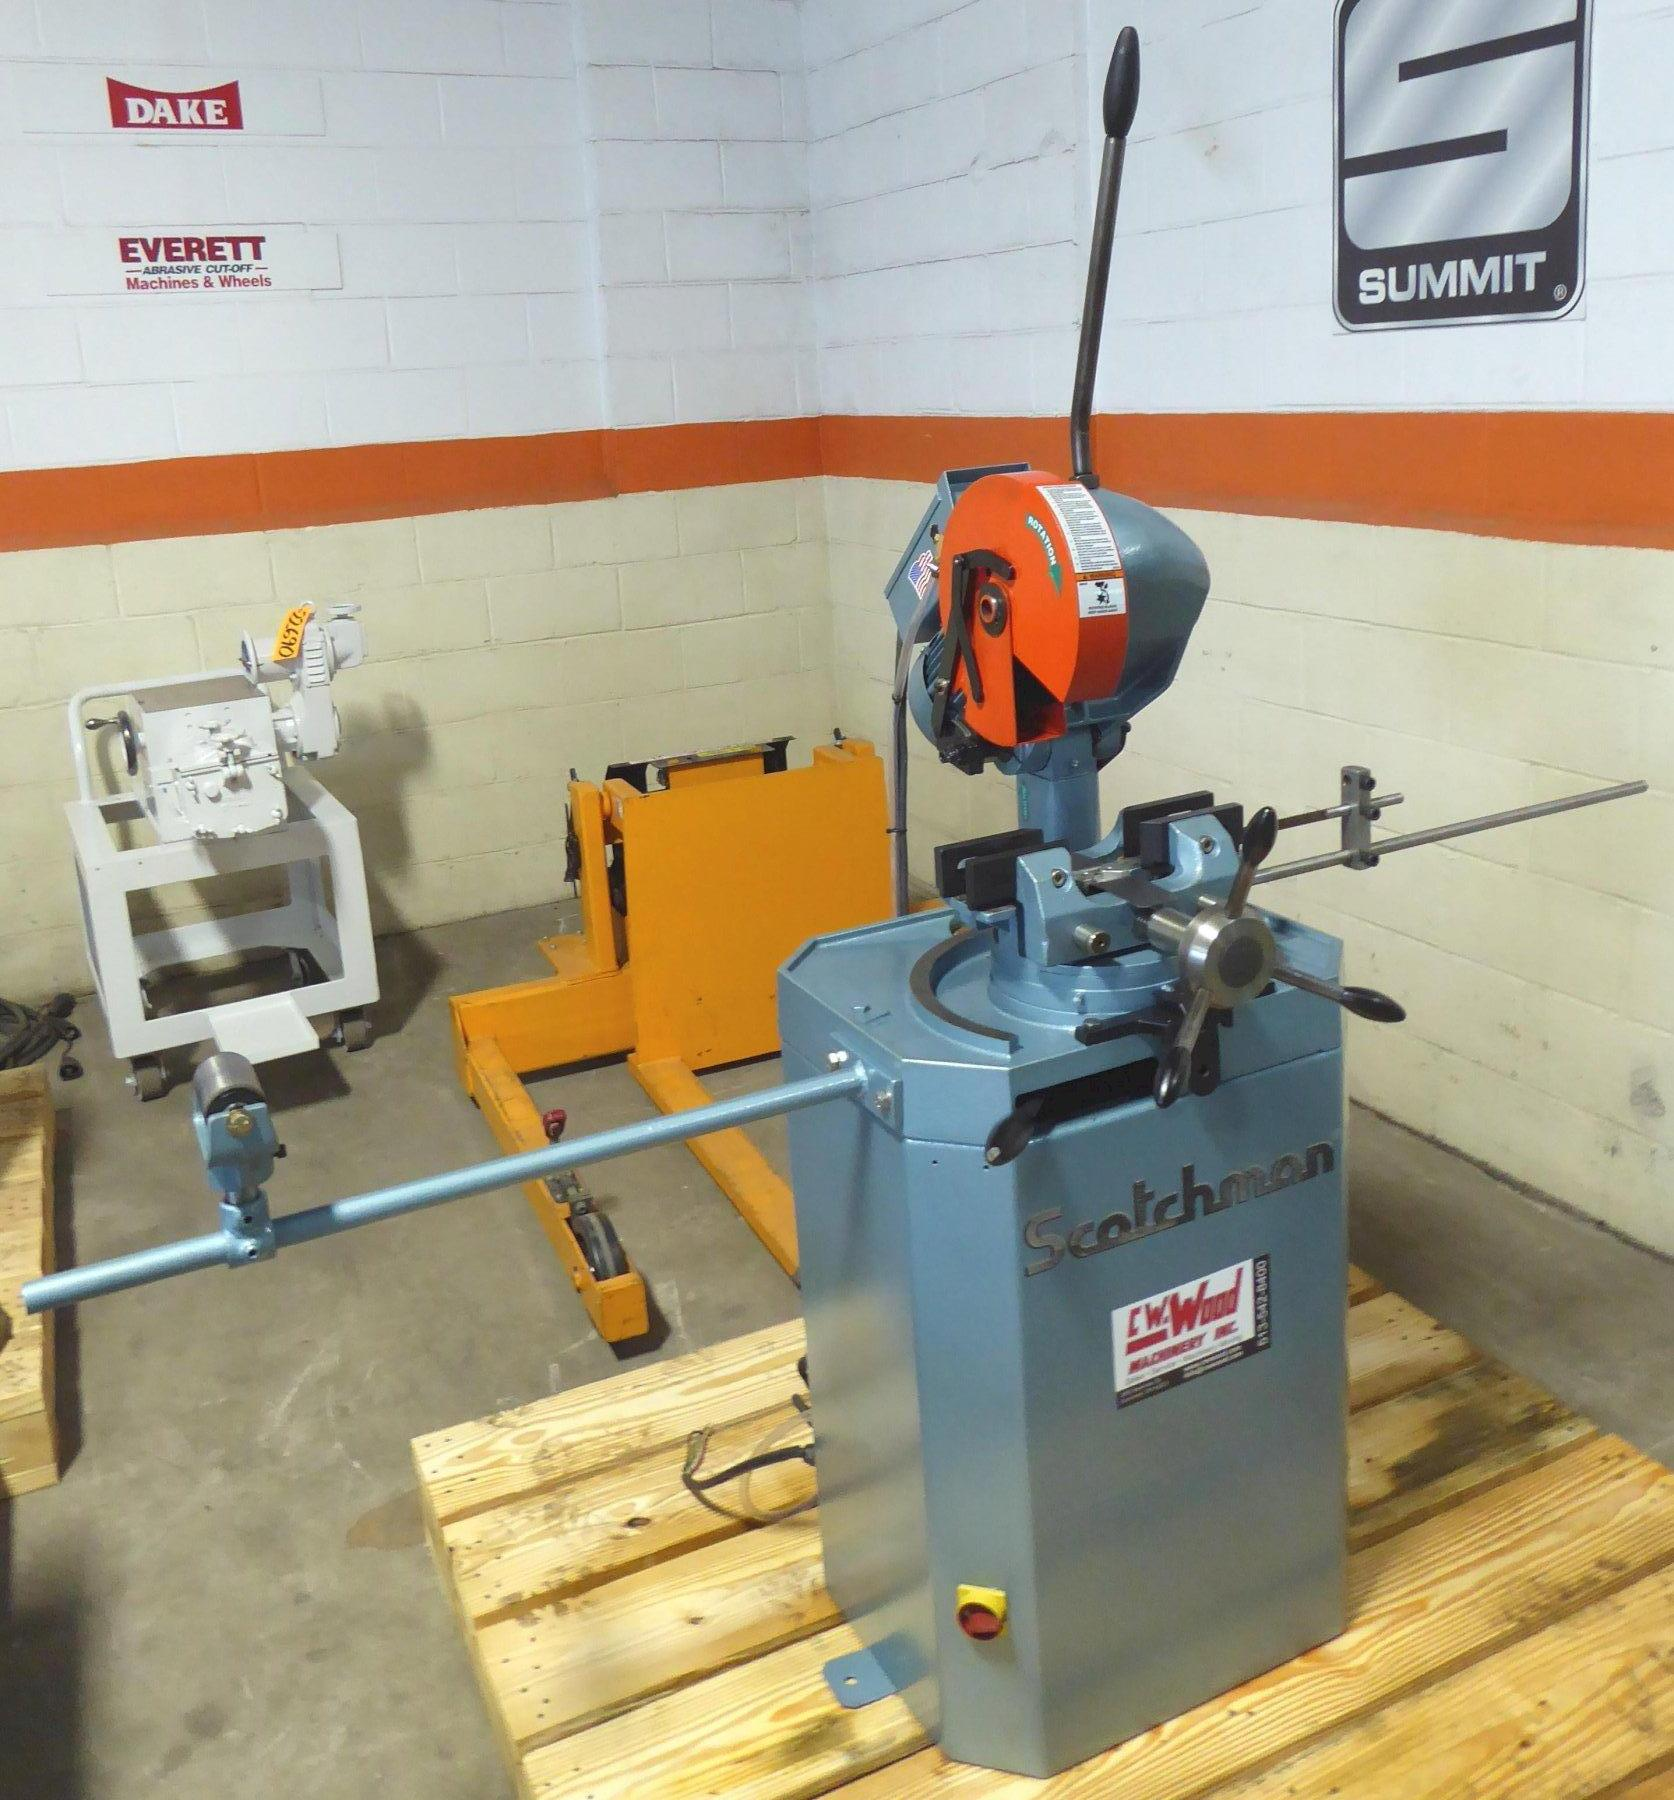 """10"""" Scotchman Cold Saw Model CPO 250 LT, 30/60 RPM, Miter, 3-1/8"""" Round Tubing, 1-1/2"""" Round Solids, 1-1/2 HP, Reconditioned 2020"""